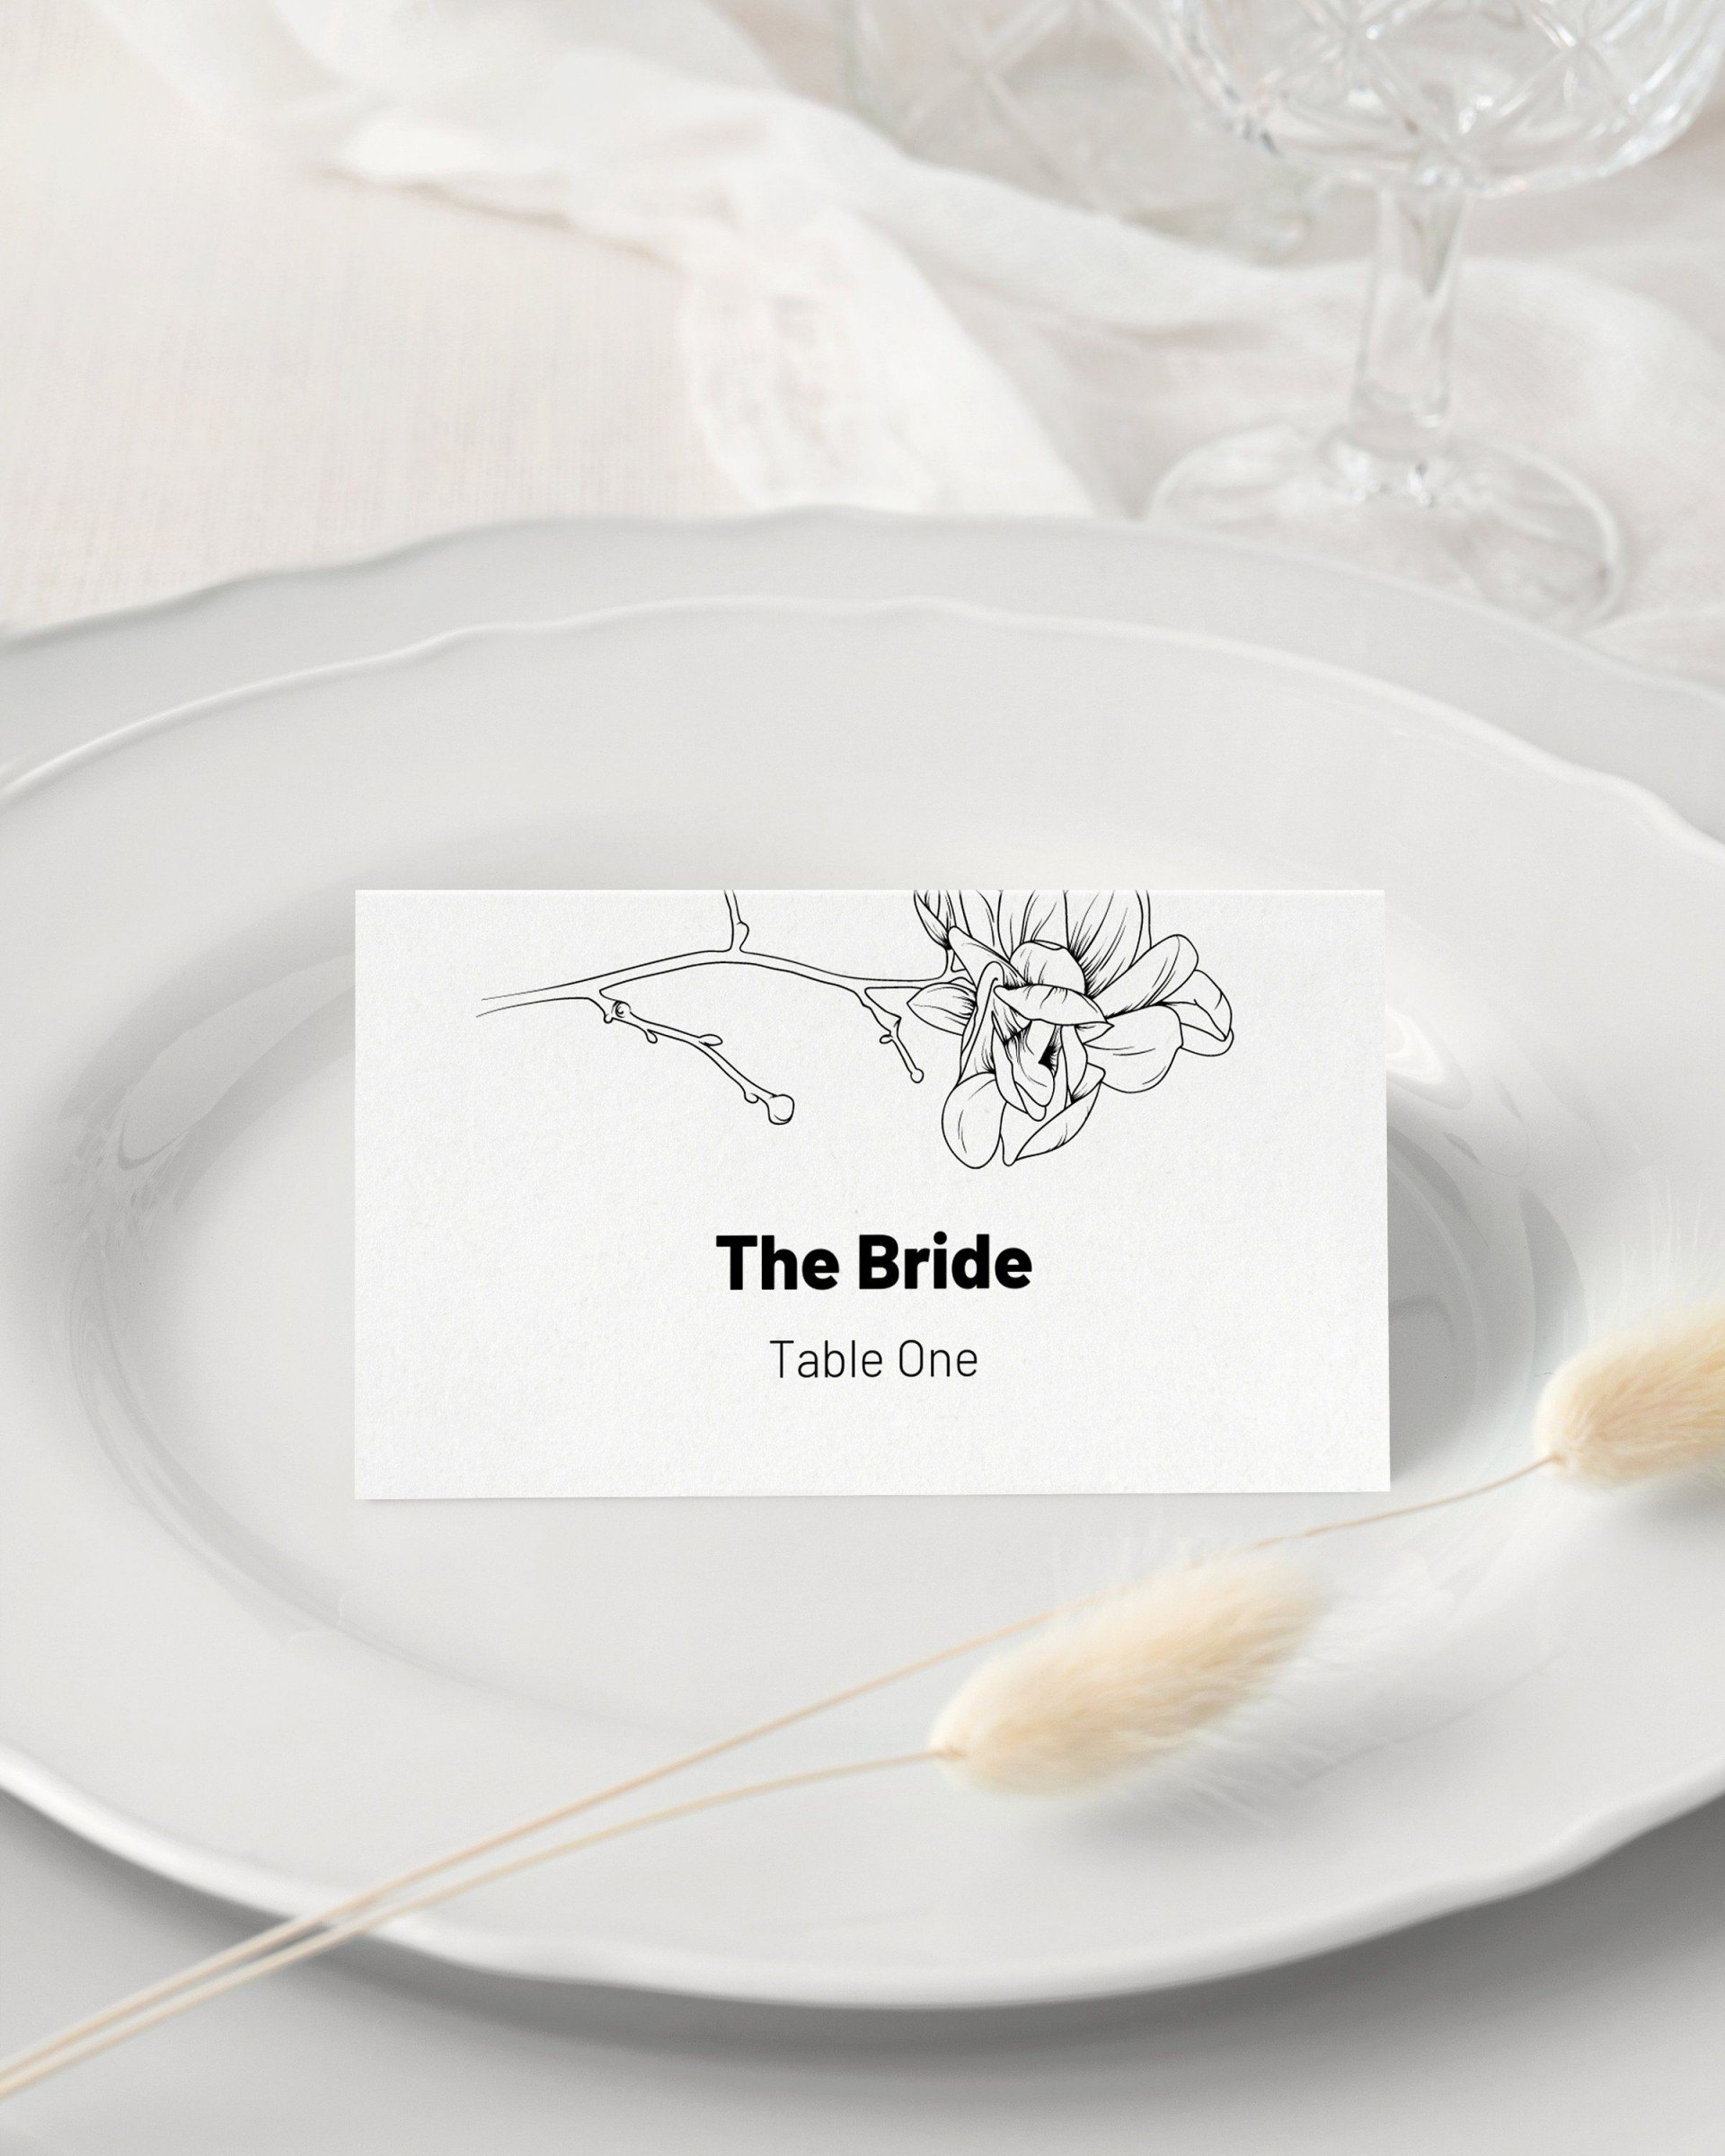 008 Unforgettable Wedding Name Card Template Picture  Free Download Design Sticker Format1920